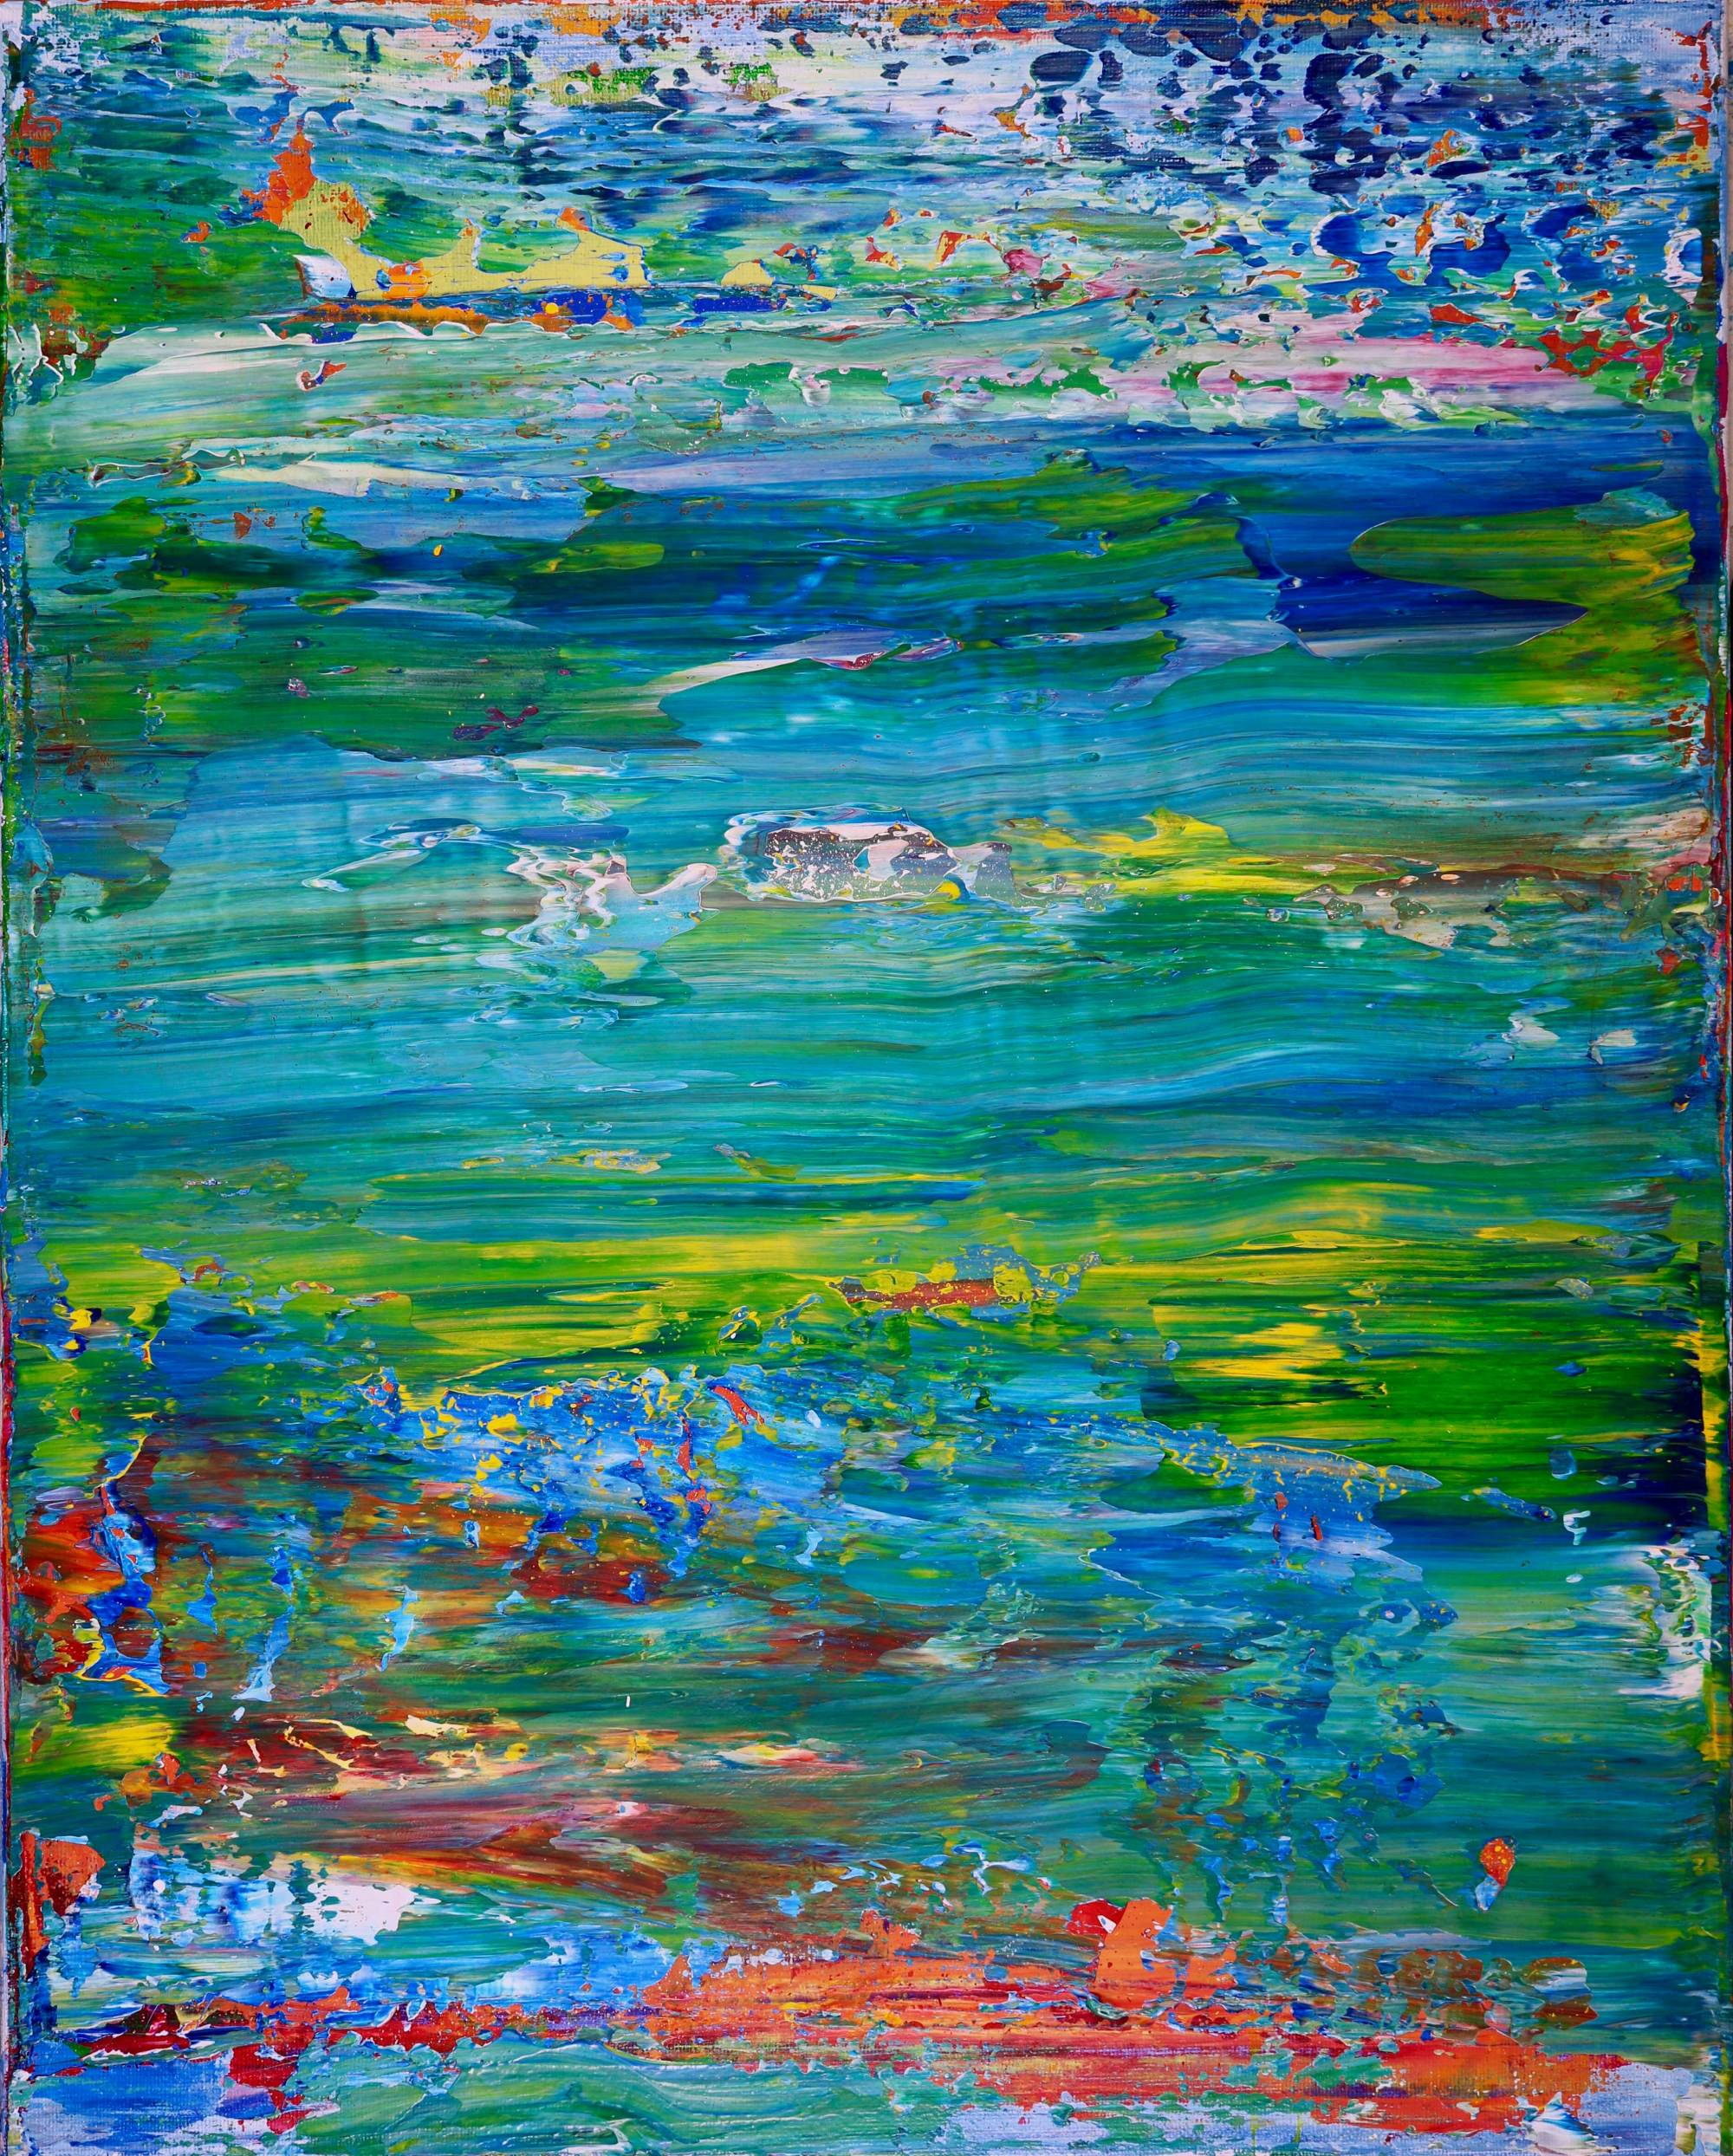 Caribe - Abstract Landscape (2017) Acrylic painting by Nestor Toro